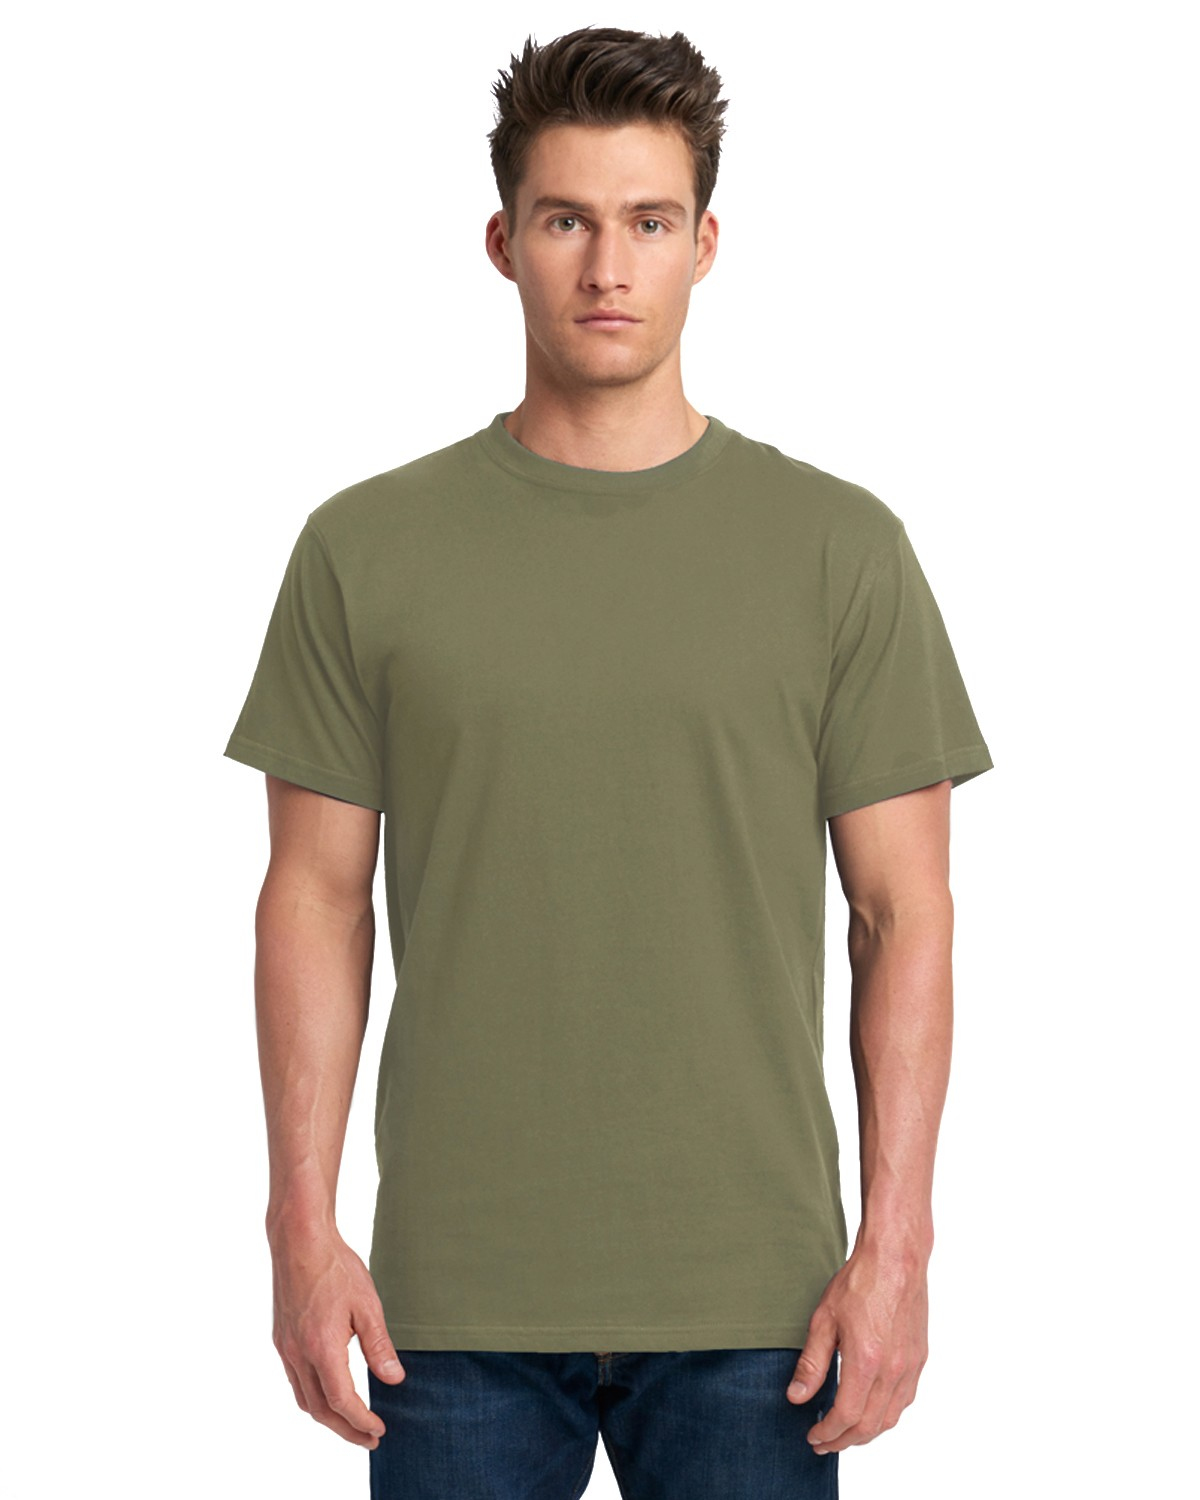 7410S Next Level MILITARY GREEN